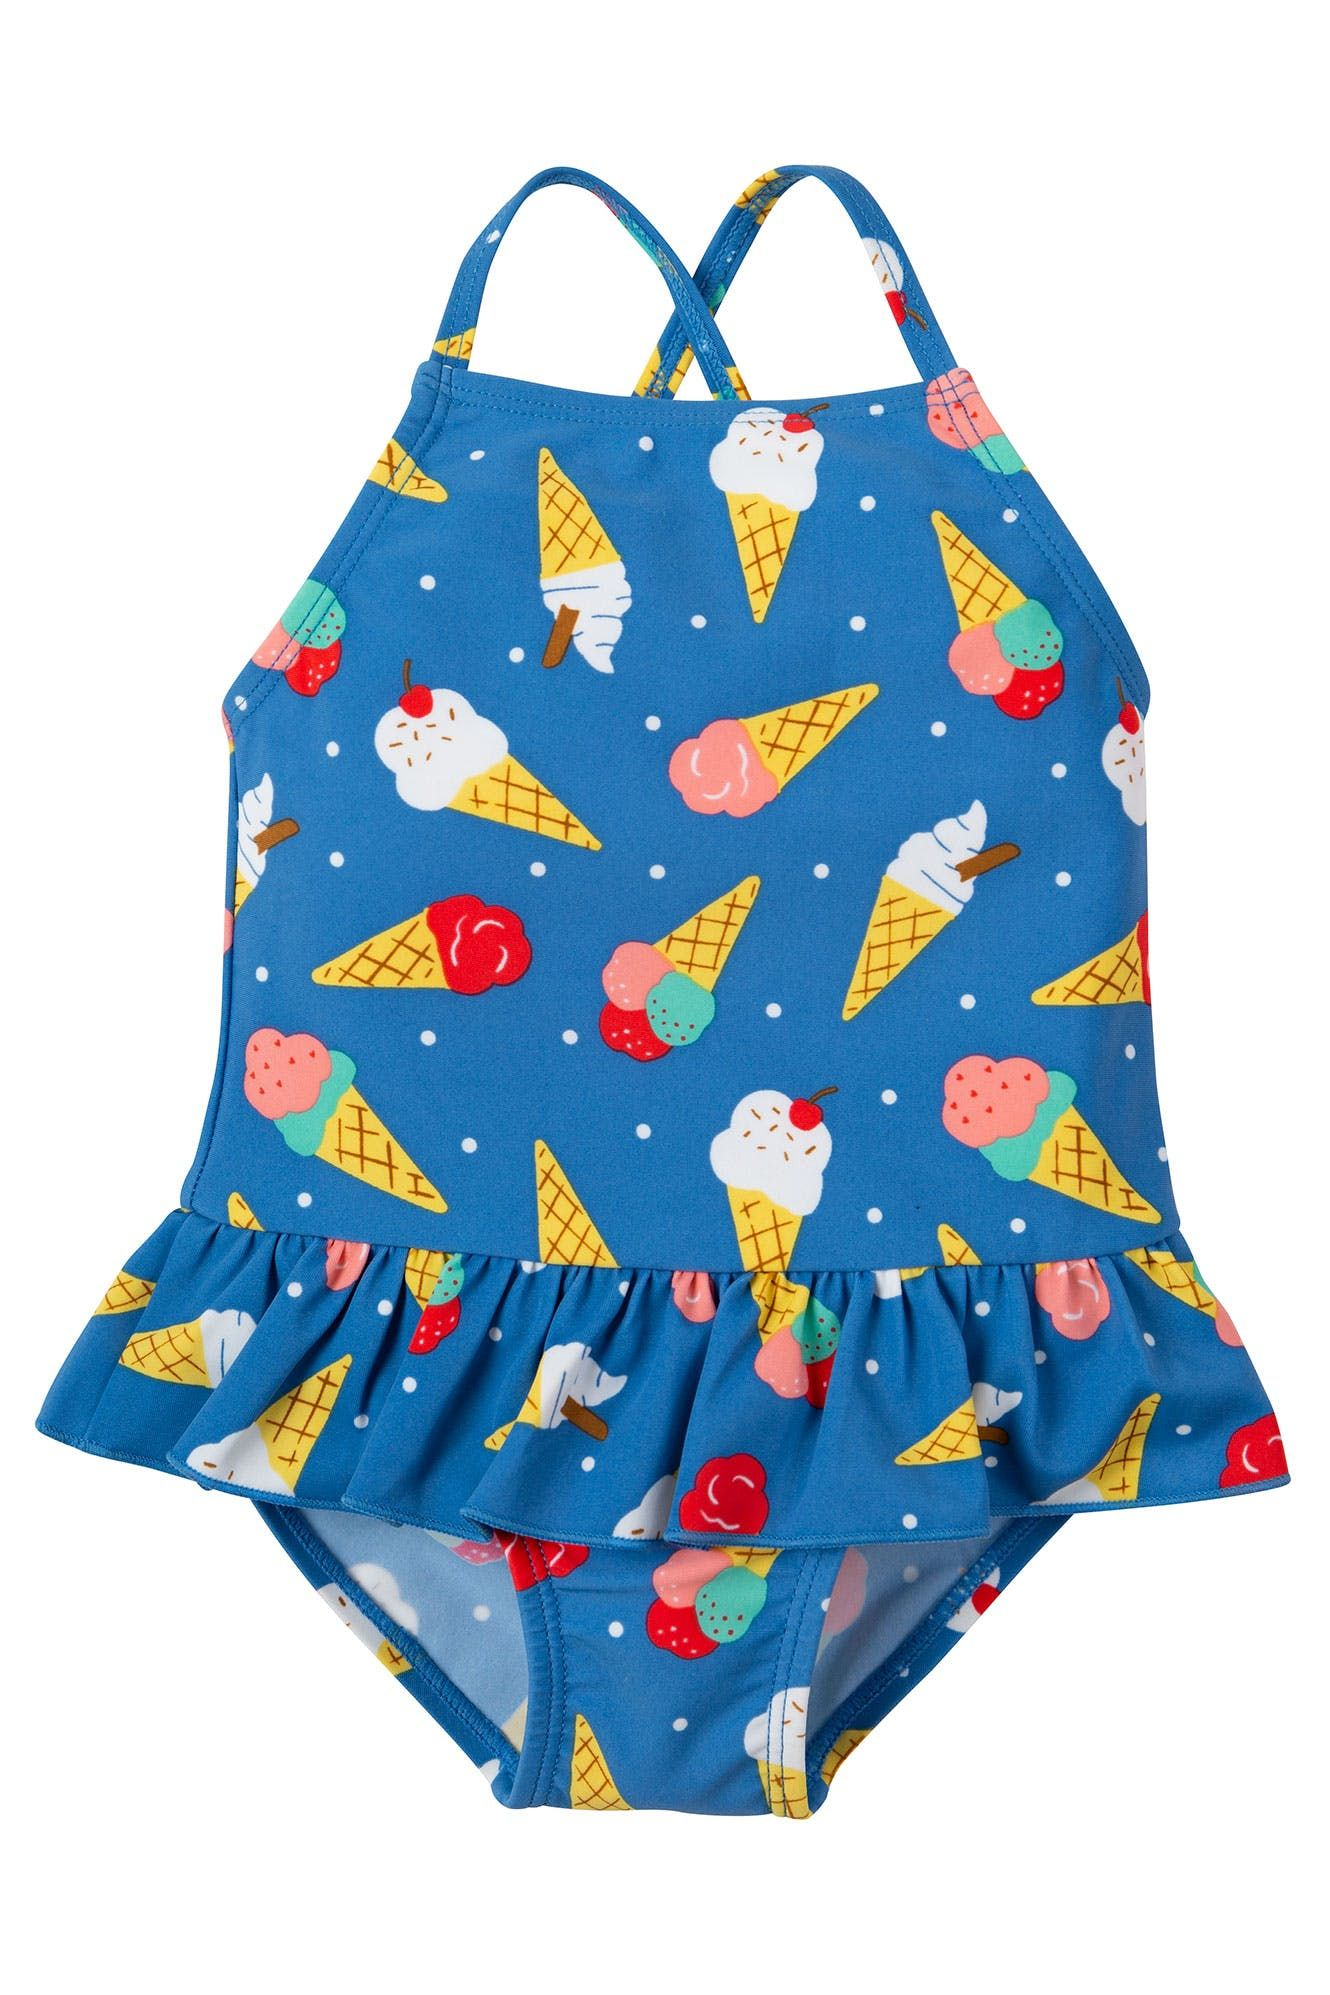 65f45b4ae7 Your little one will be ready for any adventure at the beach or by the pool  with this colourful Little Coral Swimsuit from our Swimwear range!